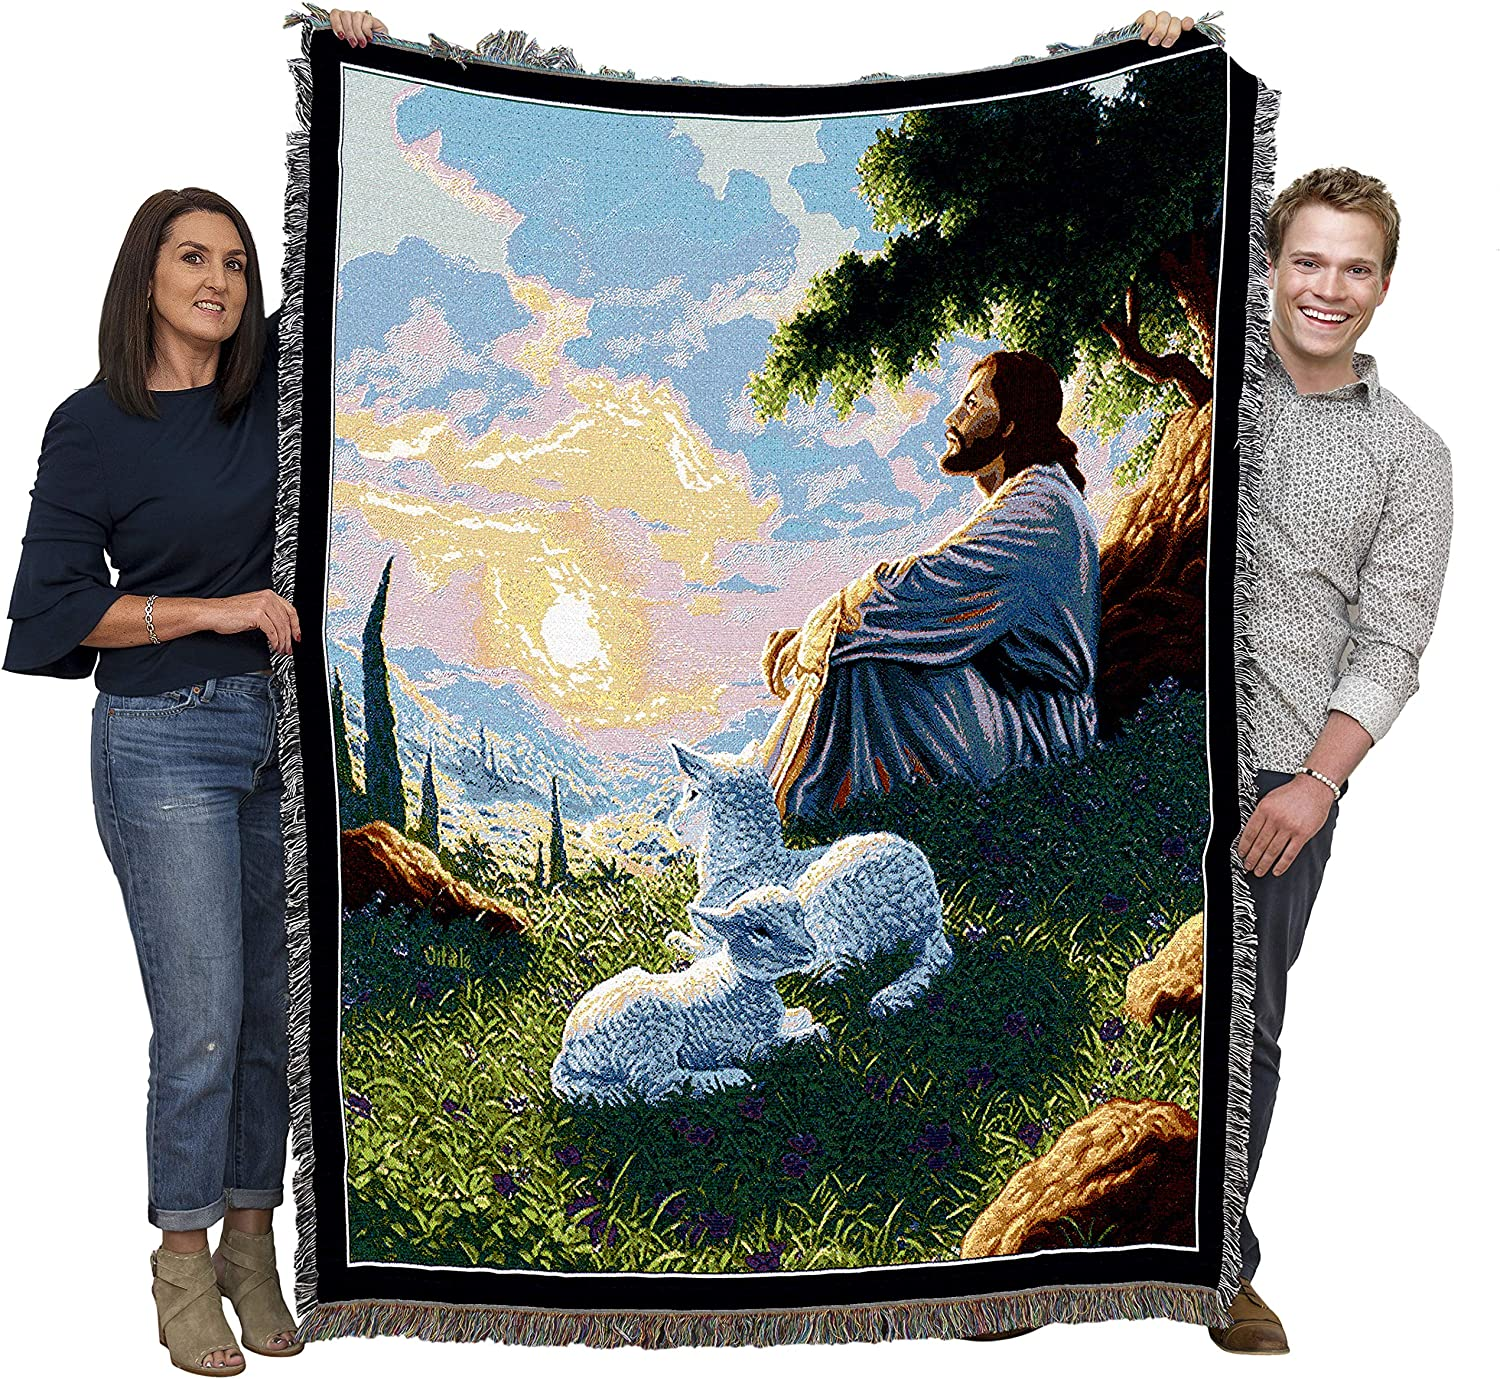 Green Pastures by Raoul Vitale Blanket